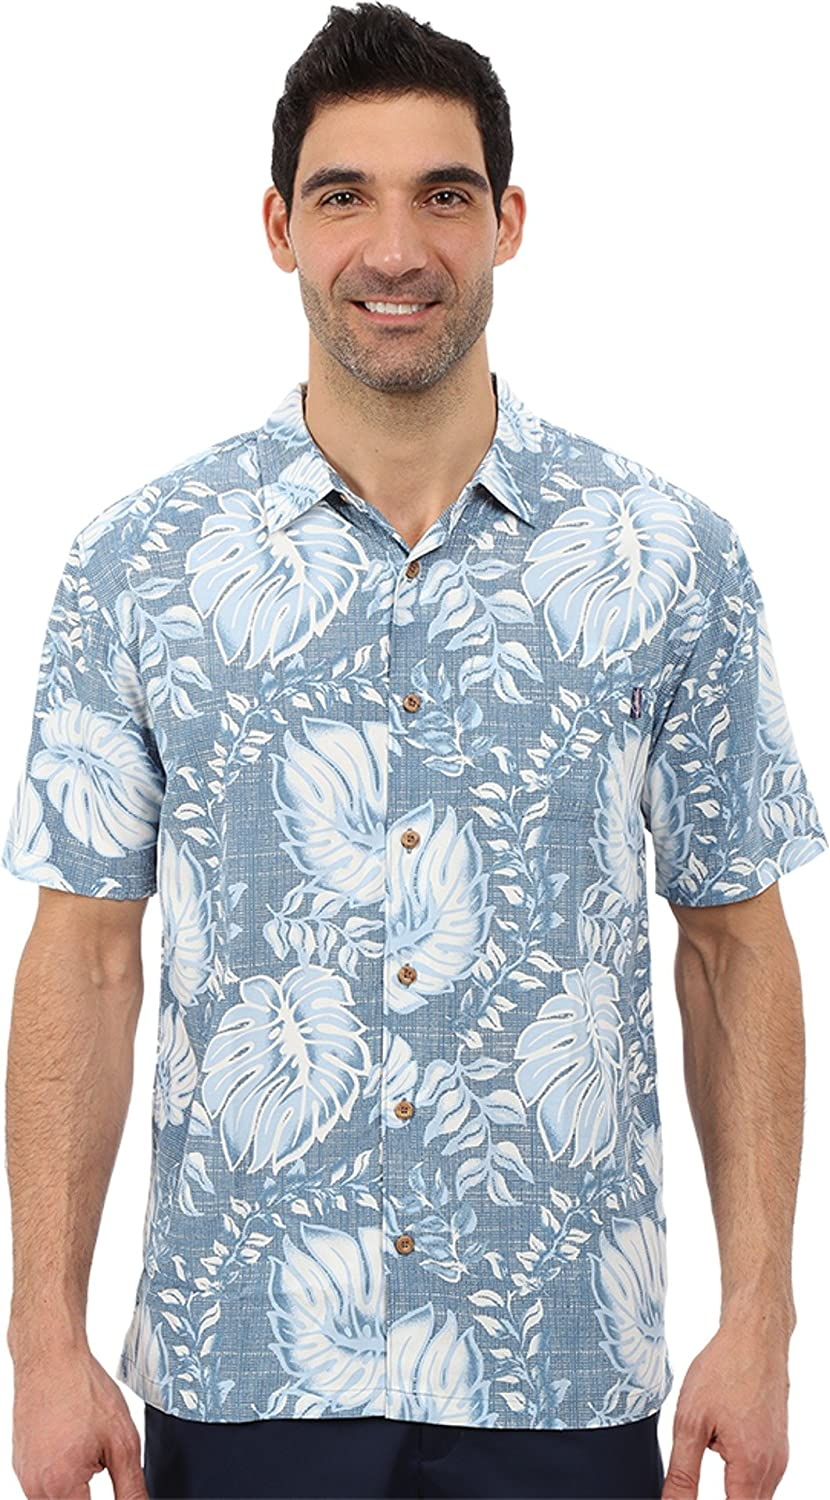 O'Neill Mens Jack O'Neill Sunset Button Up Short-Sleeve Shirt, Light Blue, X-Large